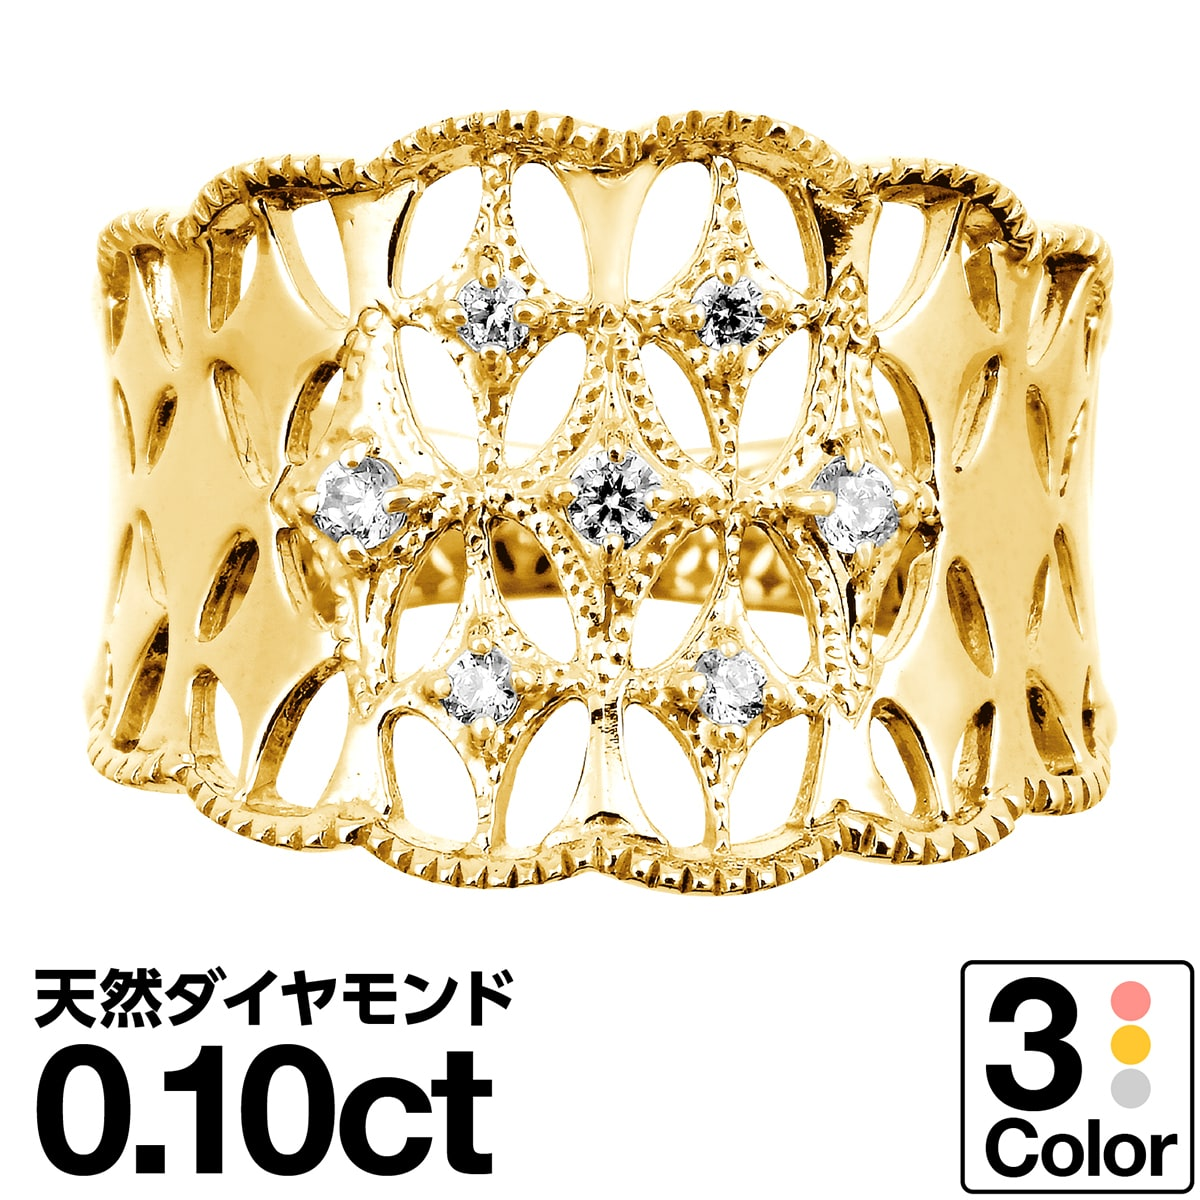 Size-5.5 1//10 cttw, Diamond Wedding Band in 10K Yellow Gold G-H,I2-I3